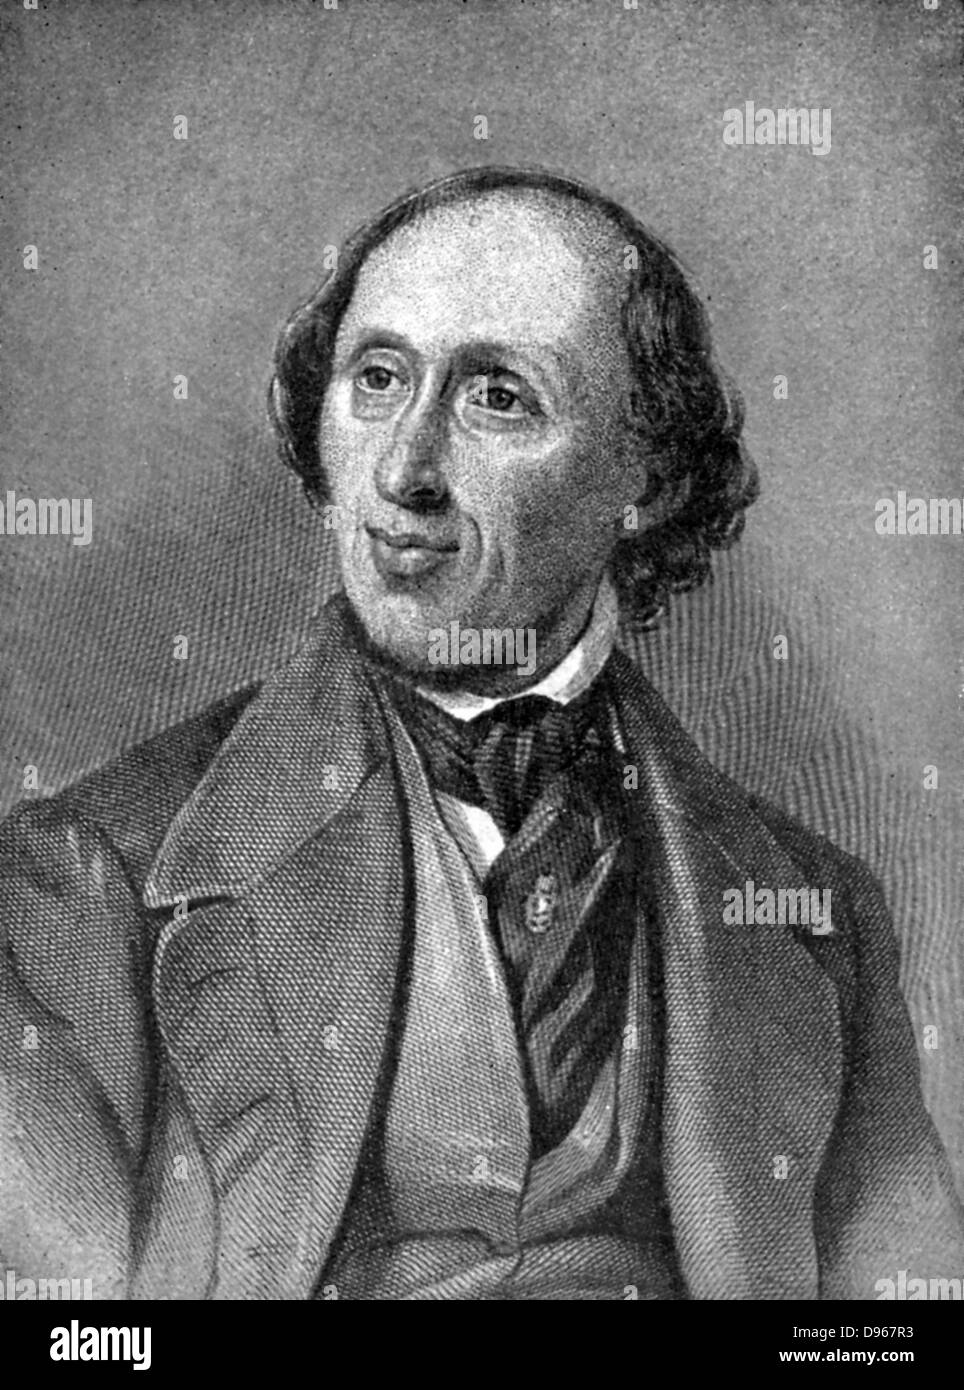 Hans Christian Andersen  (1805-1875) Danish author, particularly remembered for his fairy tales - Stock Image